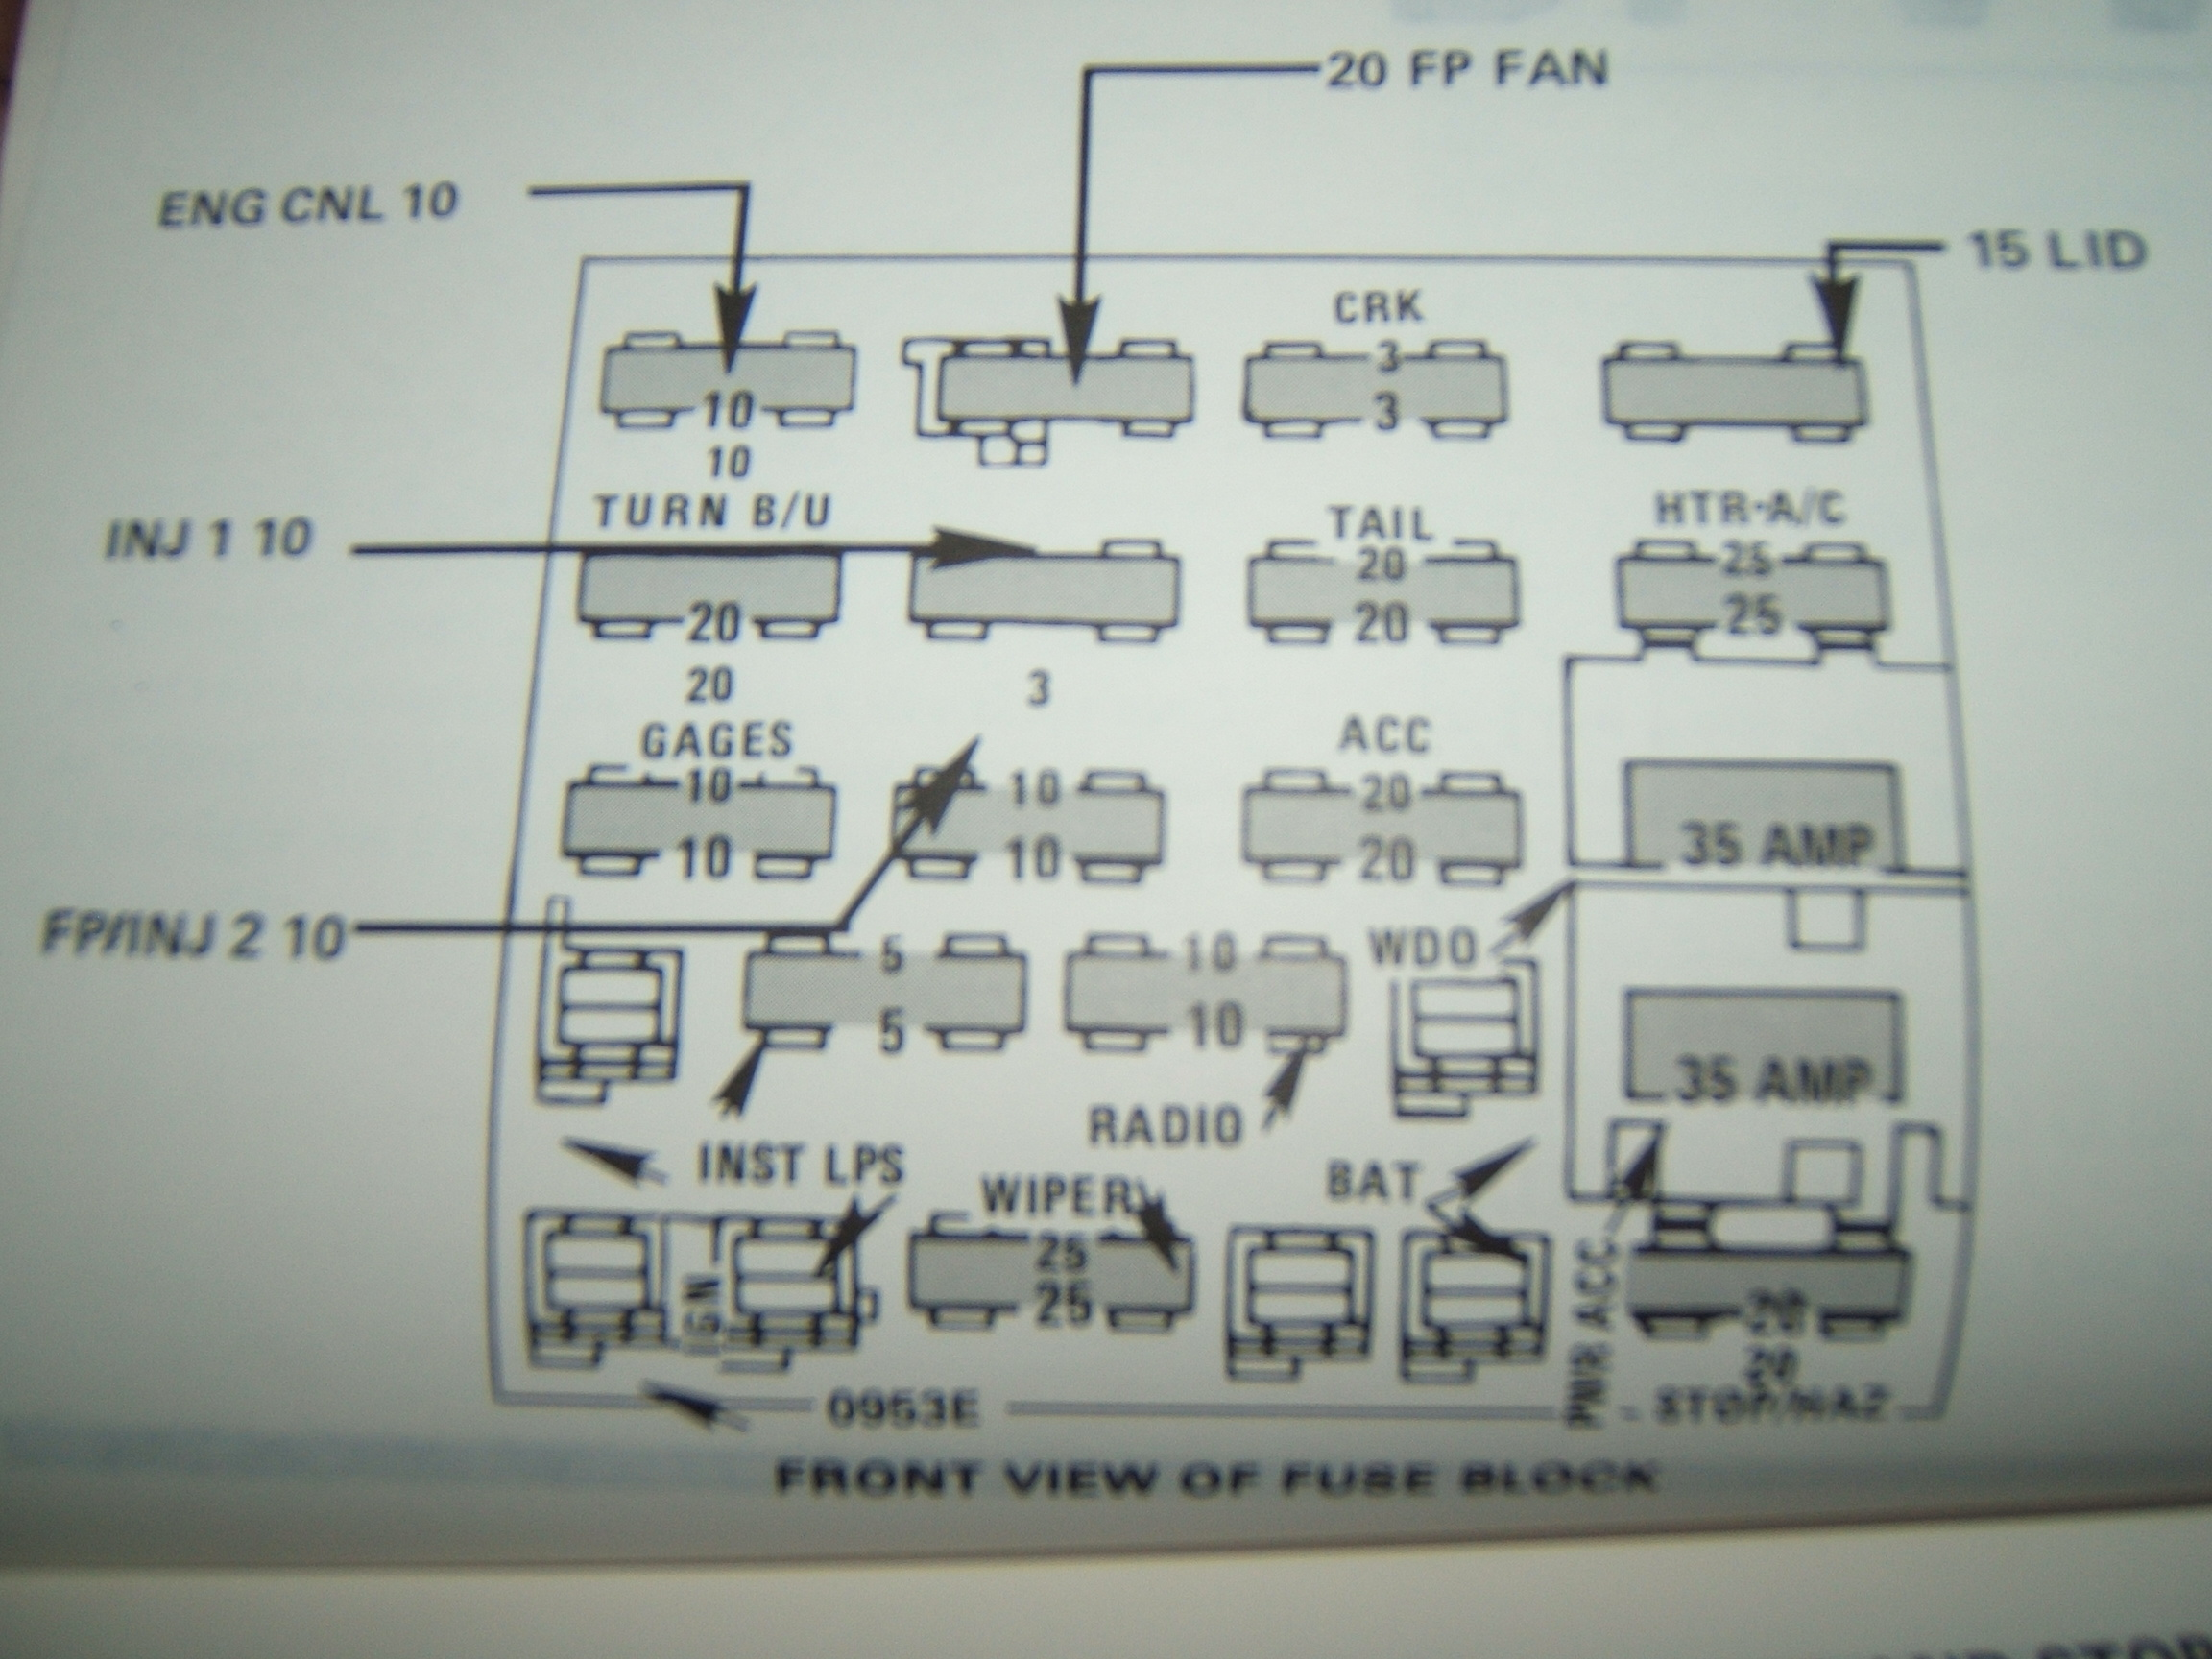 [SCHEMATICS_48YU]  4E88768 1988 Gmc S15 Fuse Box Diagram | Wiring Library | 1988 Gmc S15 Fuse Box Diagram |  | Wiring Library